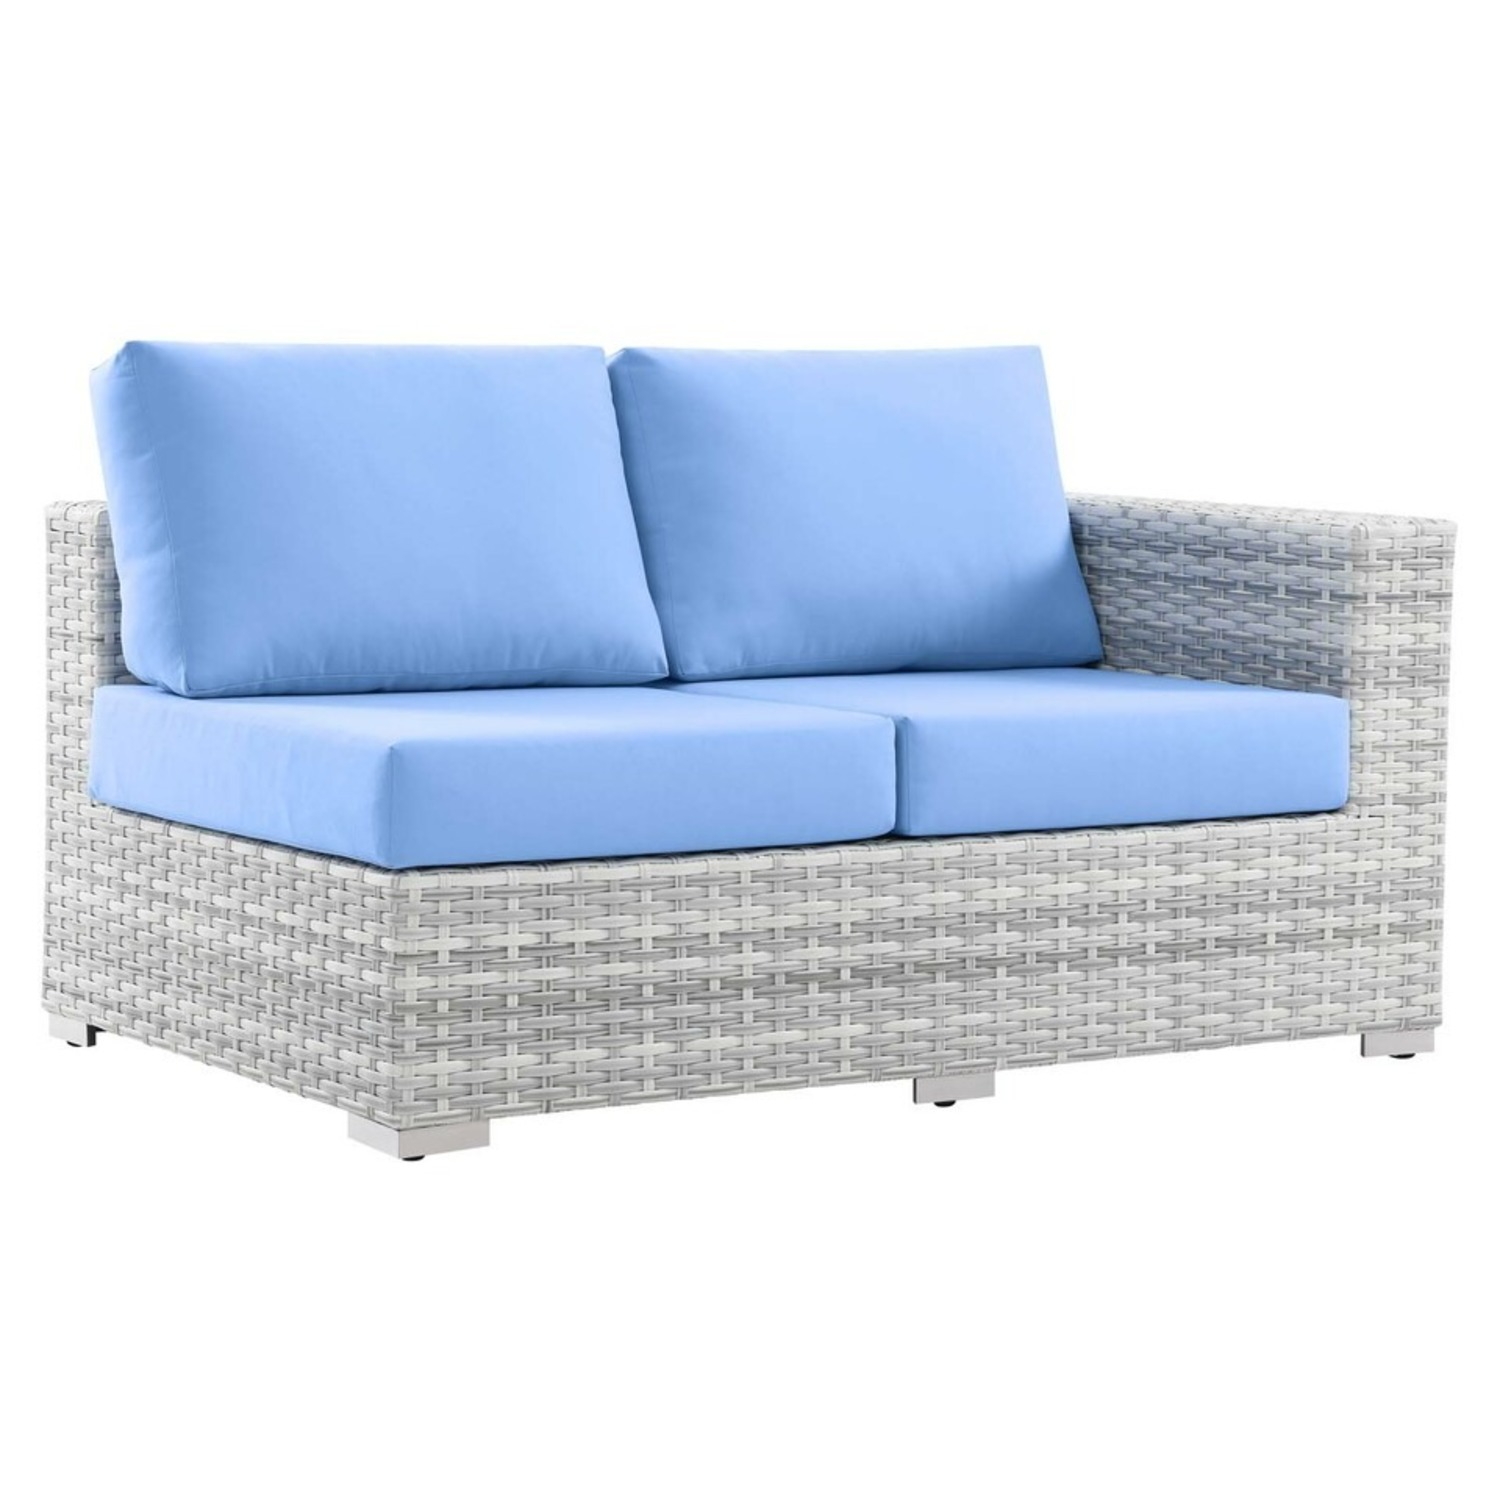 6-Piece Outdoor Patio Sectional In Light Blue Seat - image-5